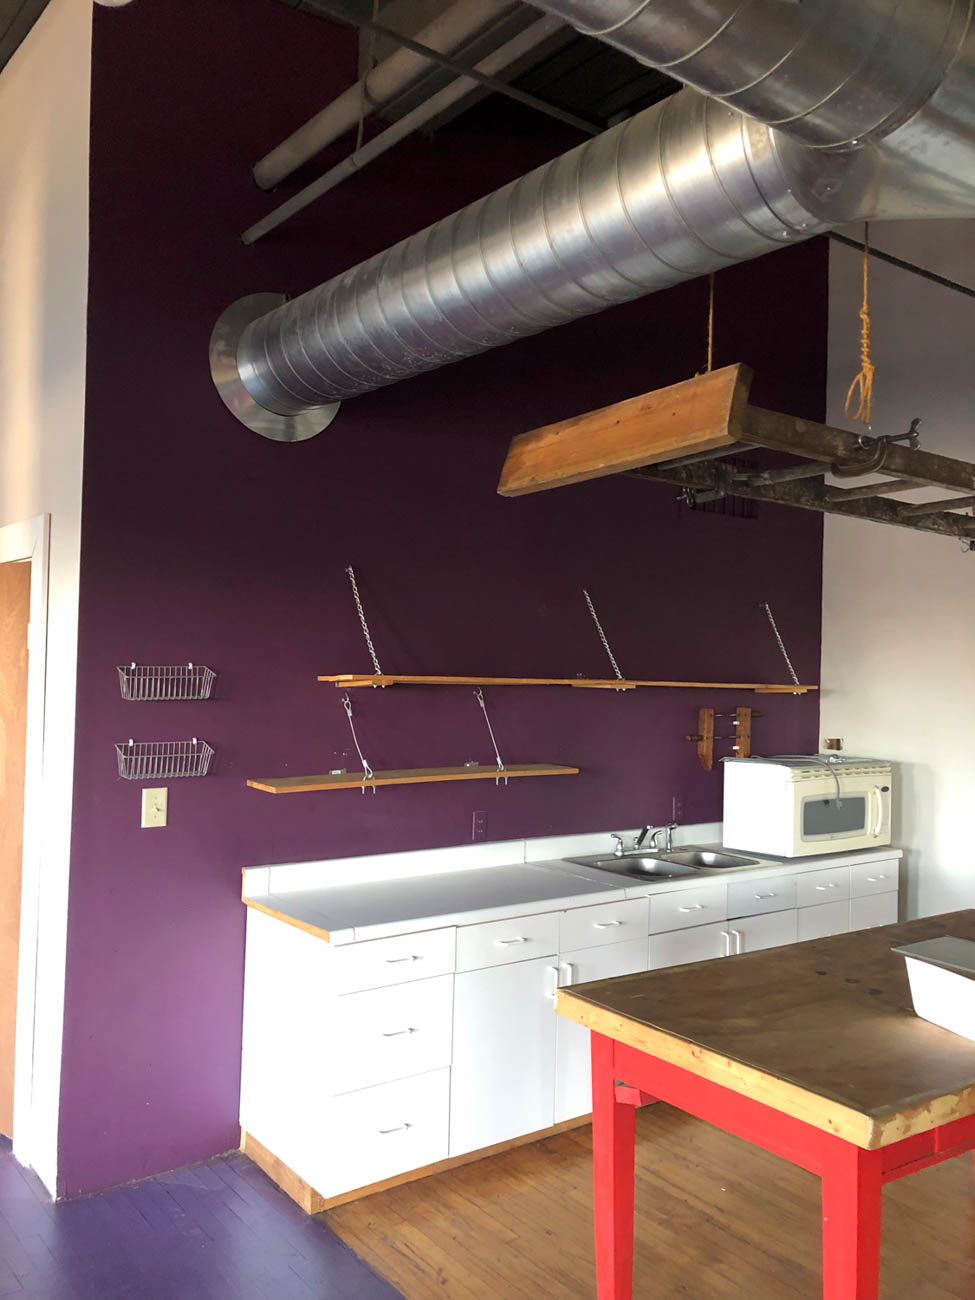 Photo of the kitchen prior to the renovation / Image: Marlene Rounds // Published: 7.6.19